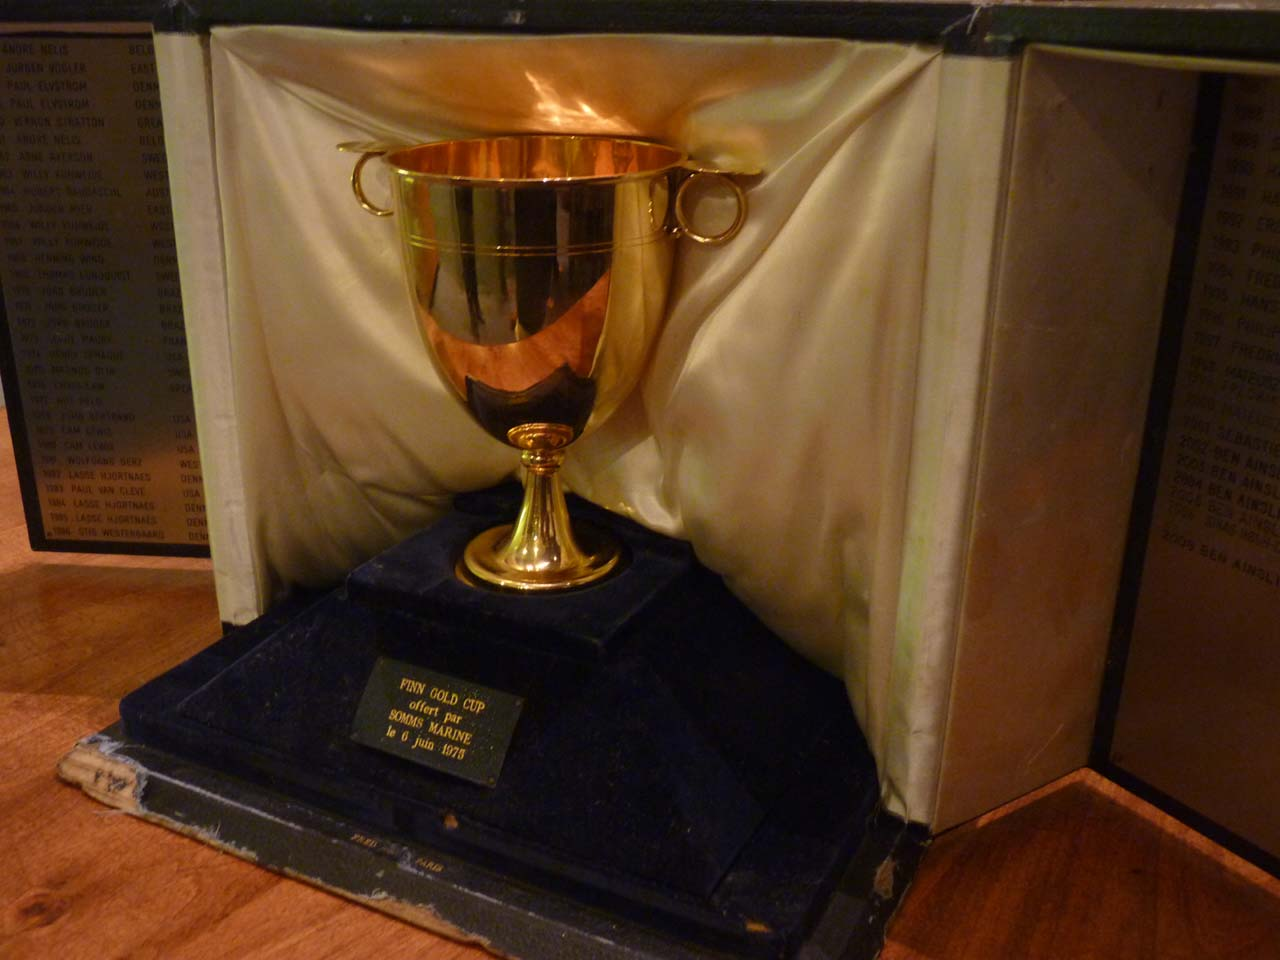 The Finn Gold Cup